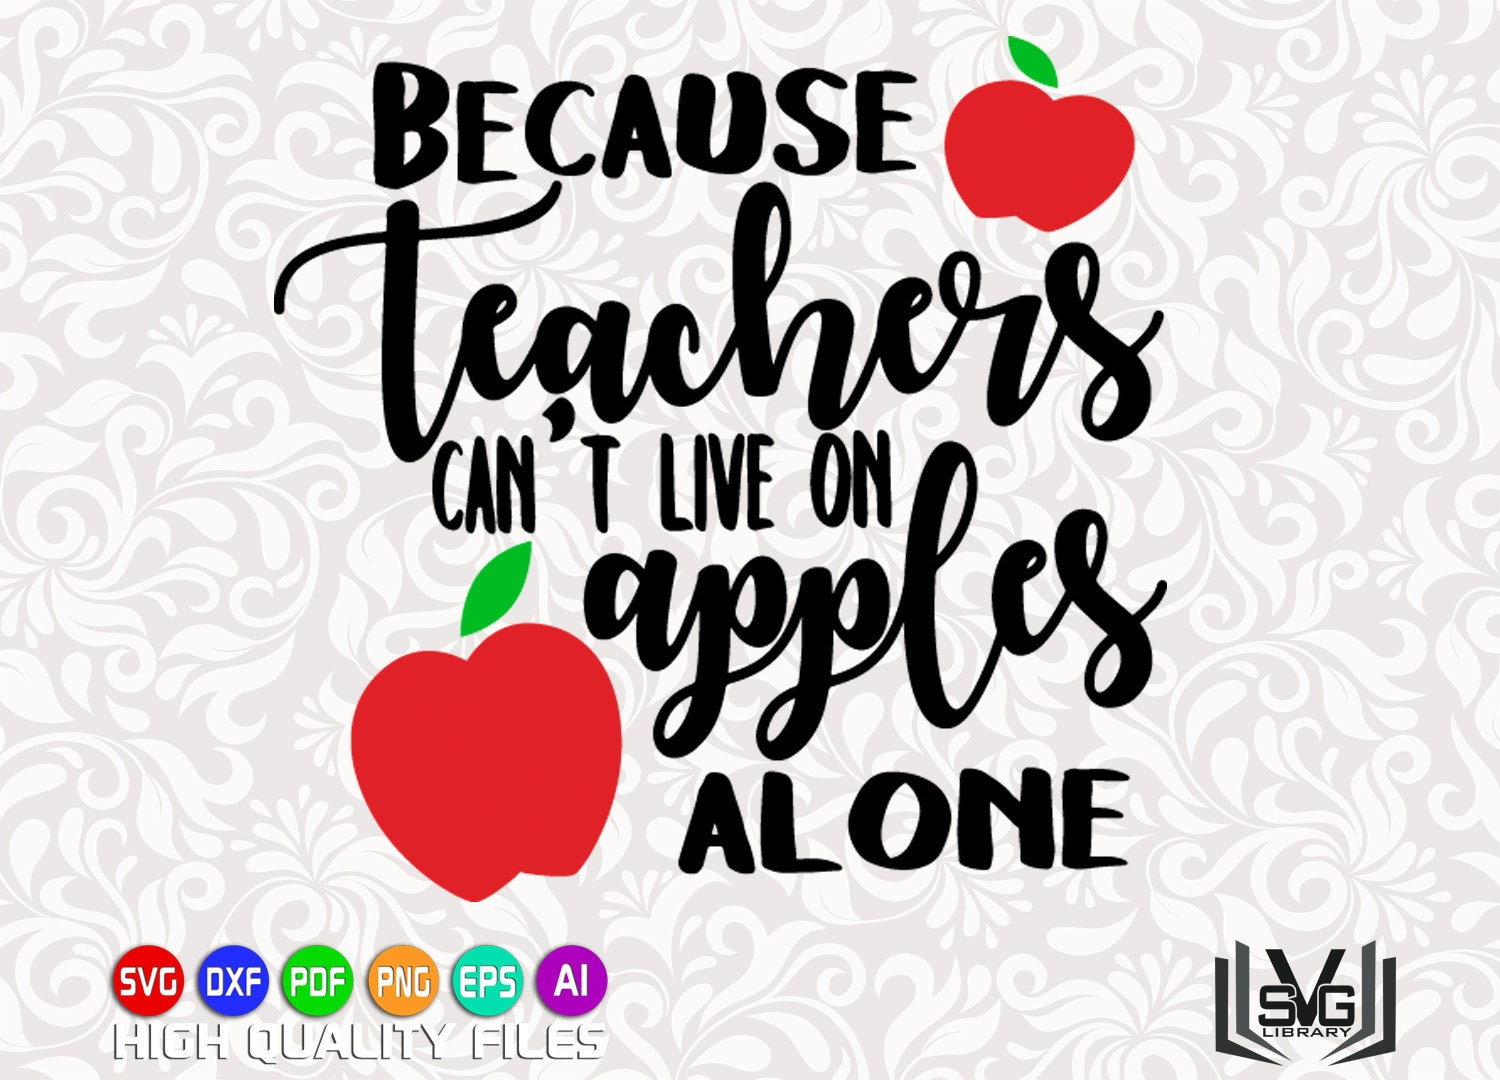 Because teachers can't live on apples alone - Teacher SVG - Teaching SVG -  Teacher shirt print - Teacher clipart - School clipart - Cut file